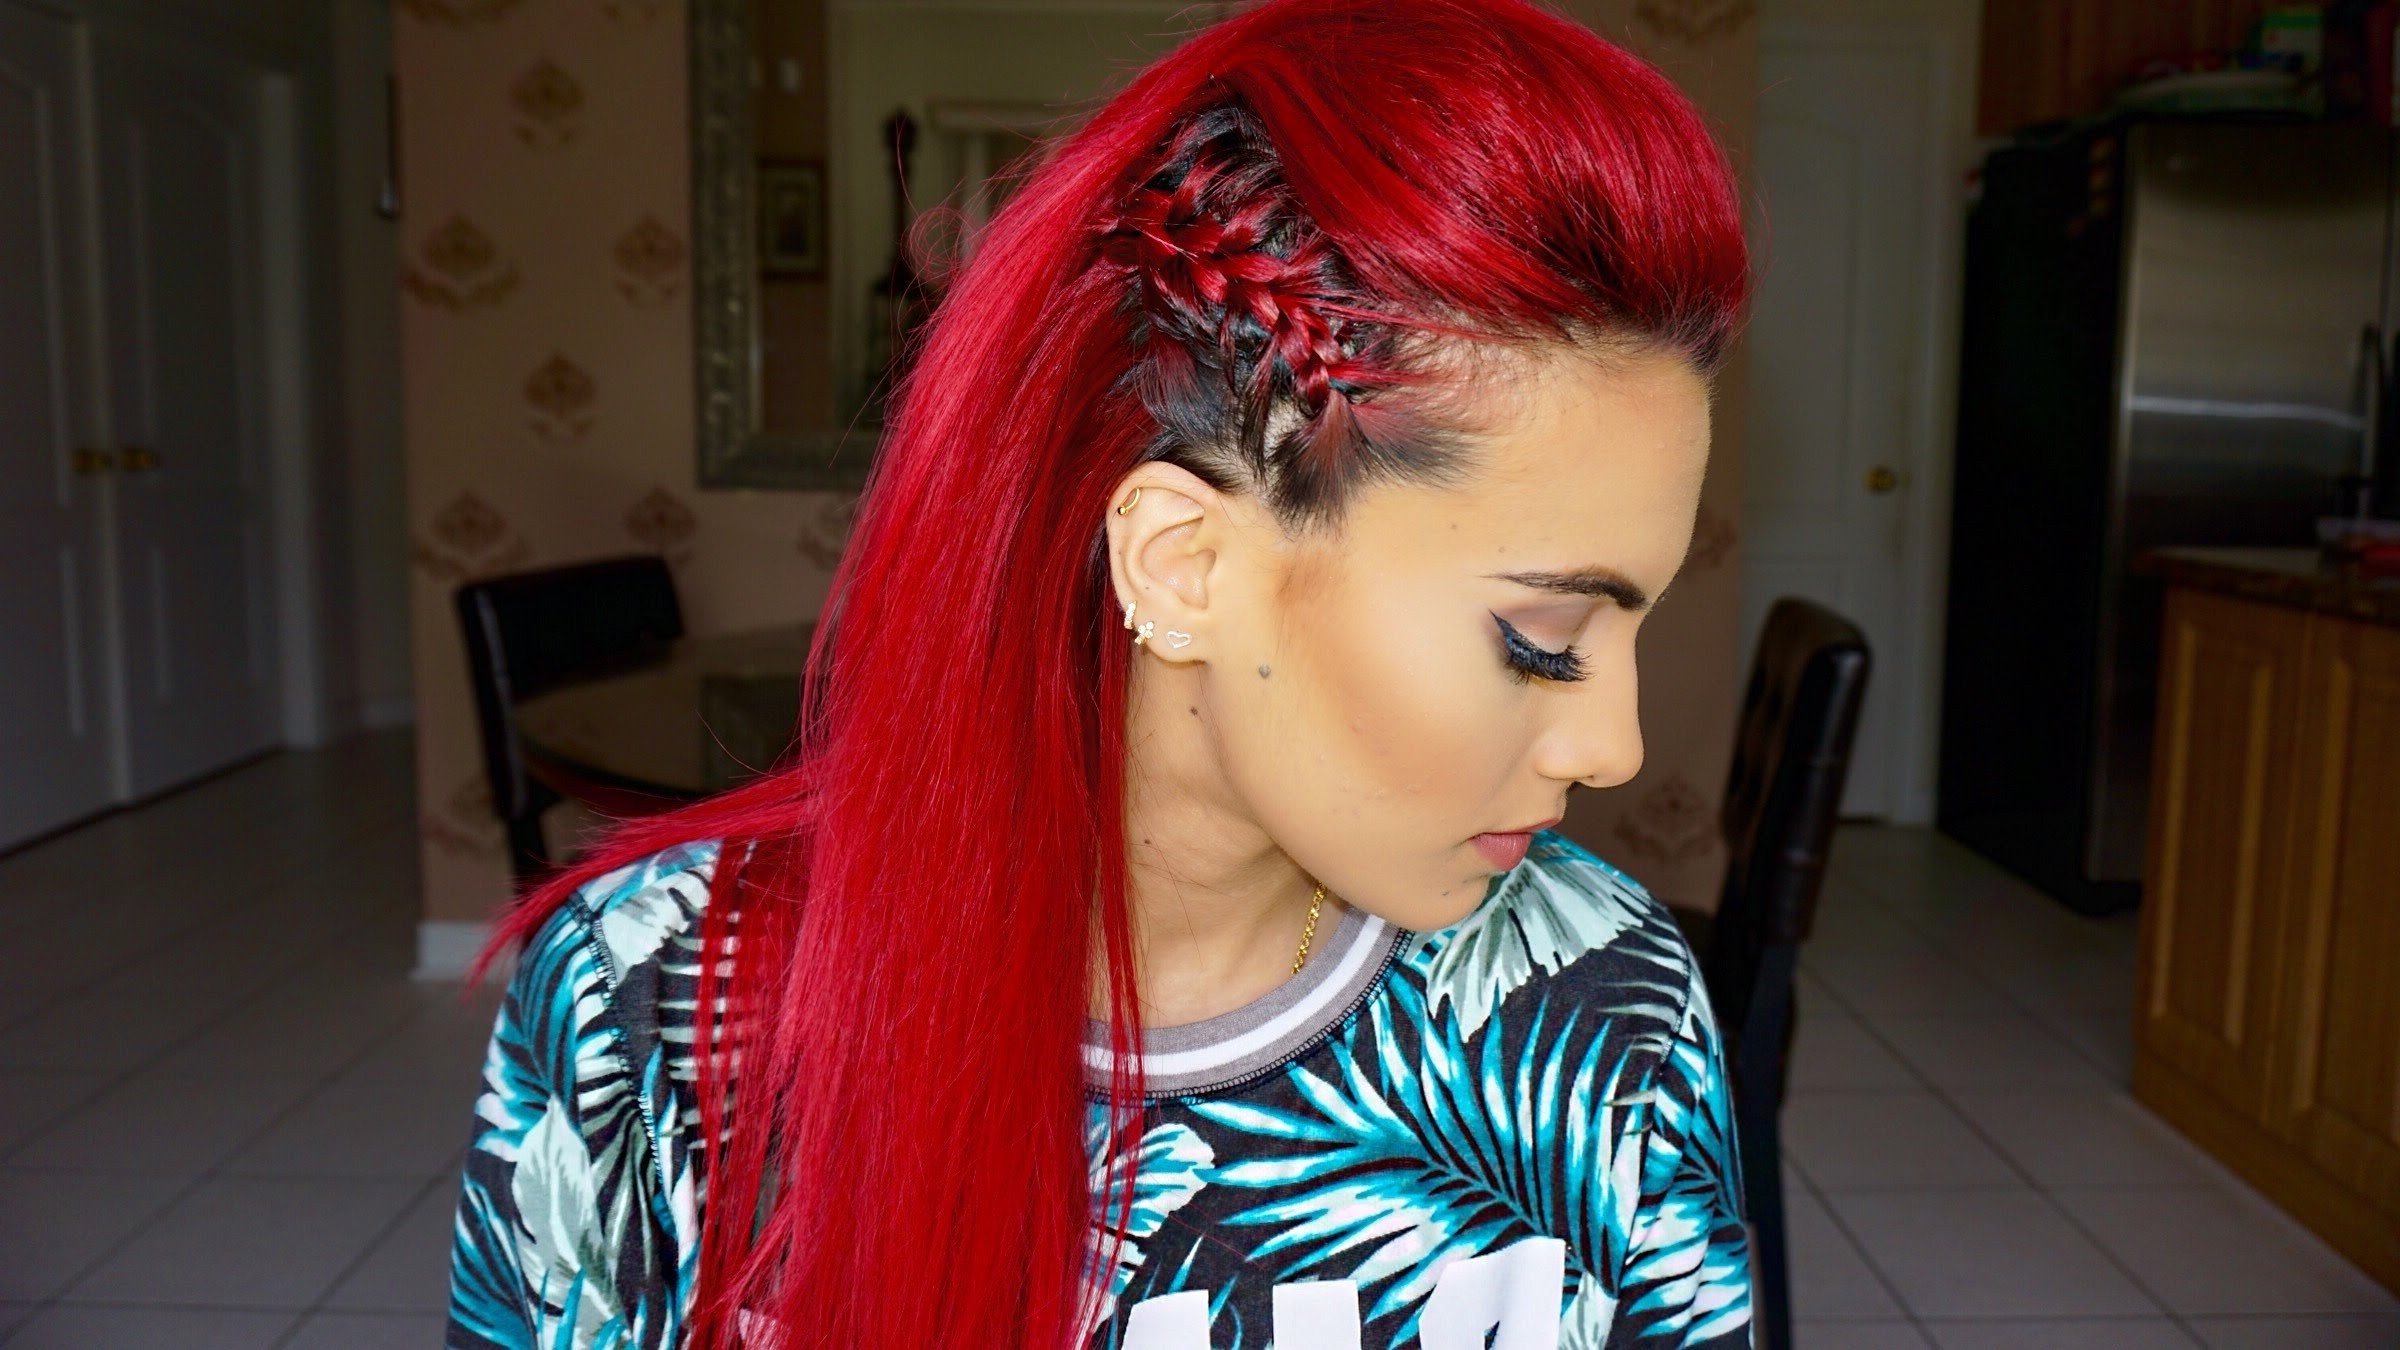 Latest Braided Hairstyles For Red Hair Regarding Braided Faux Hawk Hair Tutorial – Youtube (View 14 of 15)